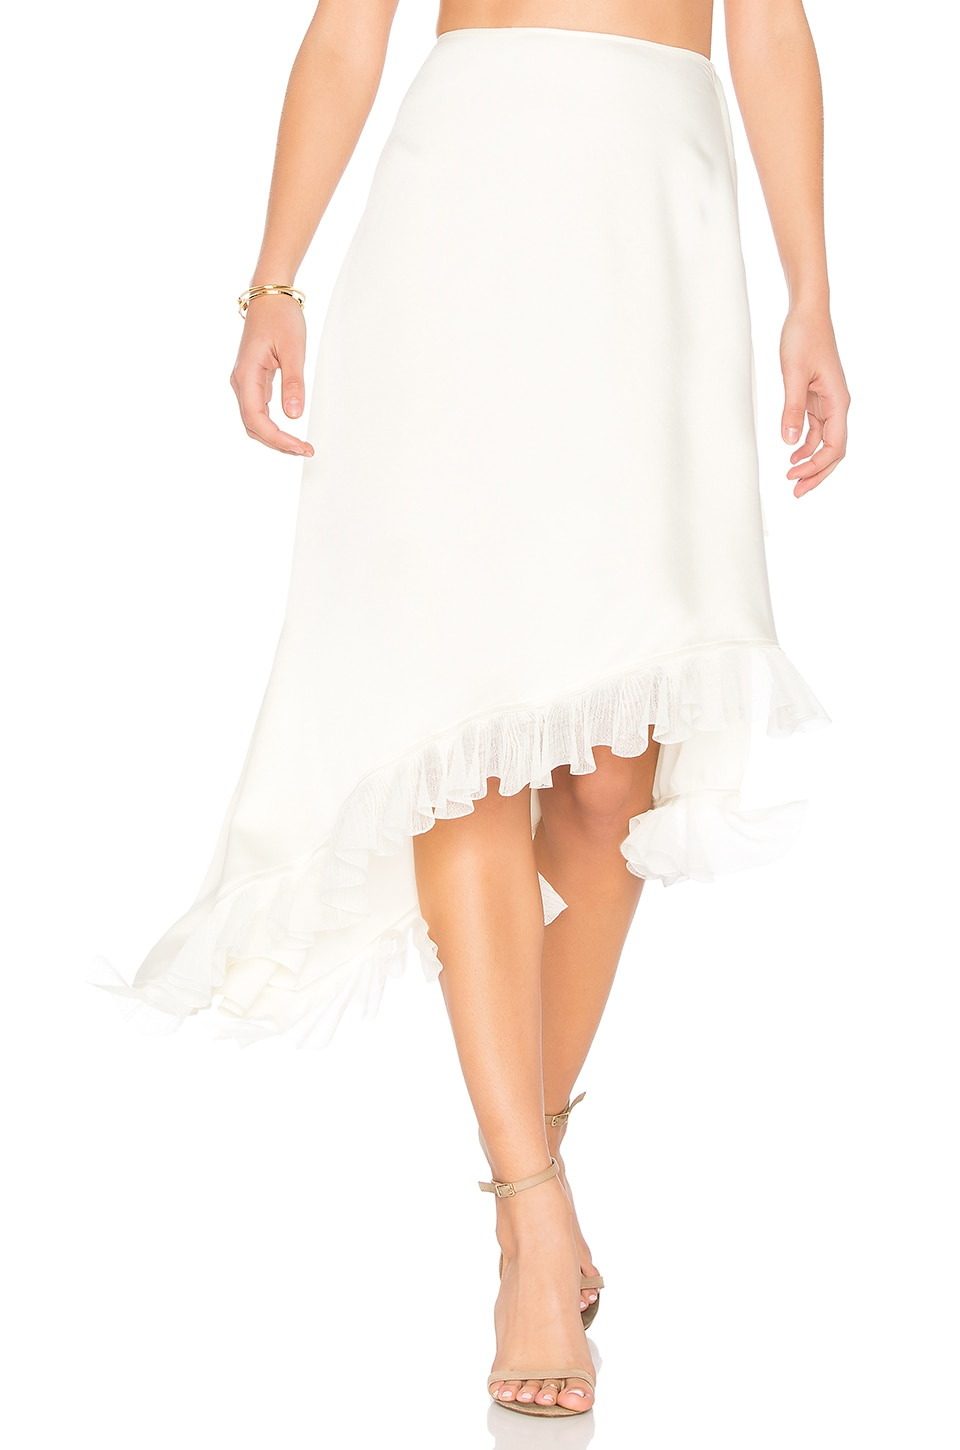 Elizabeth and James Ailie Asymmetric Skirt in Ivory